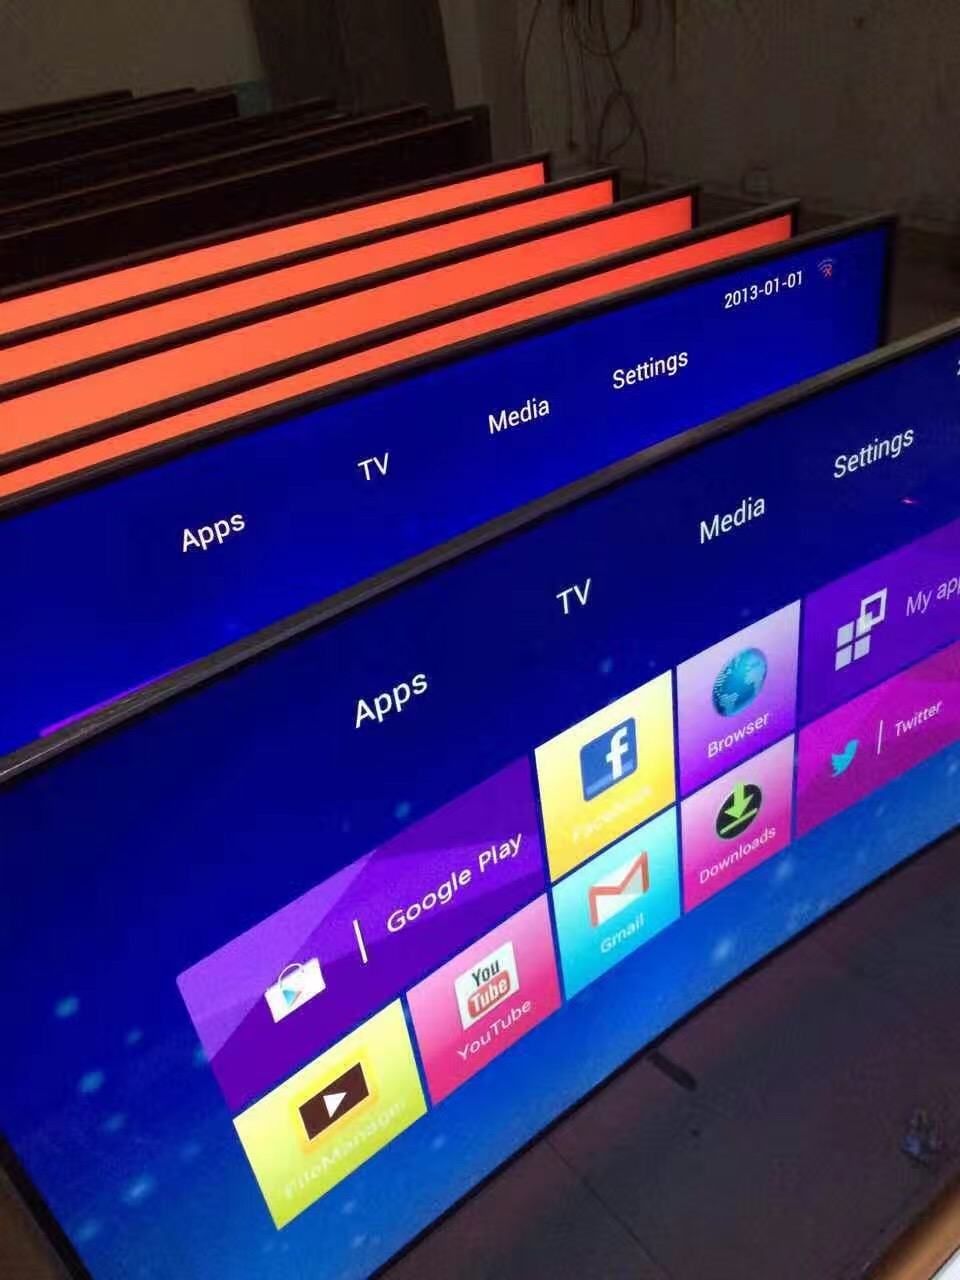 Customized OEM android TV 32 40 46 50 55 60 65 70 Inch Smart Android wifi/lan internet LCD HD LED TV television image